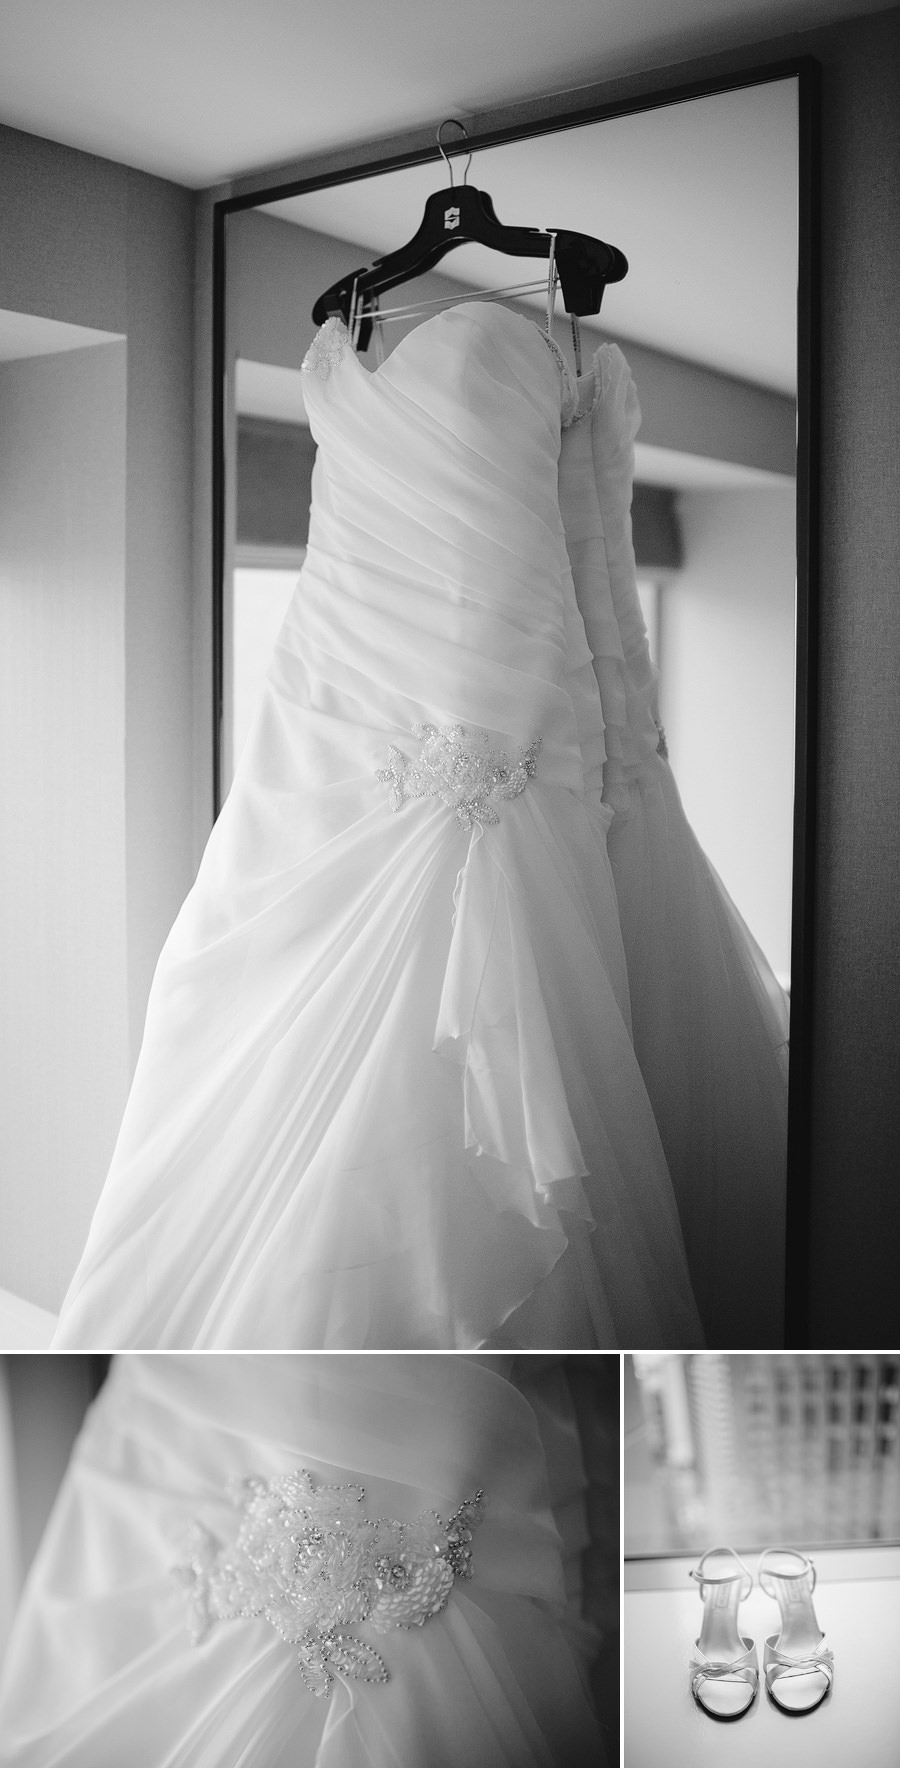 Sydney Wedding Photographers: Dress & shoes